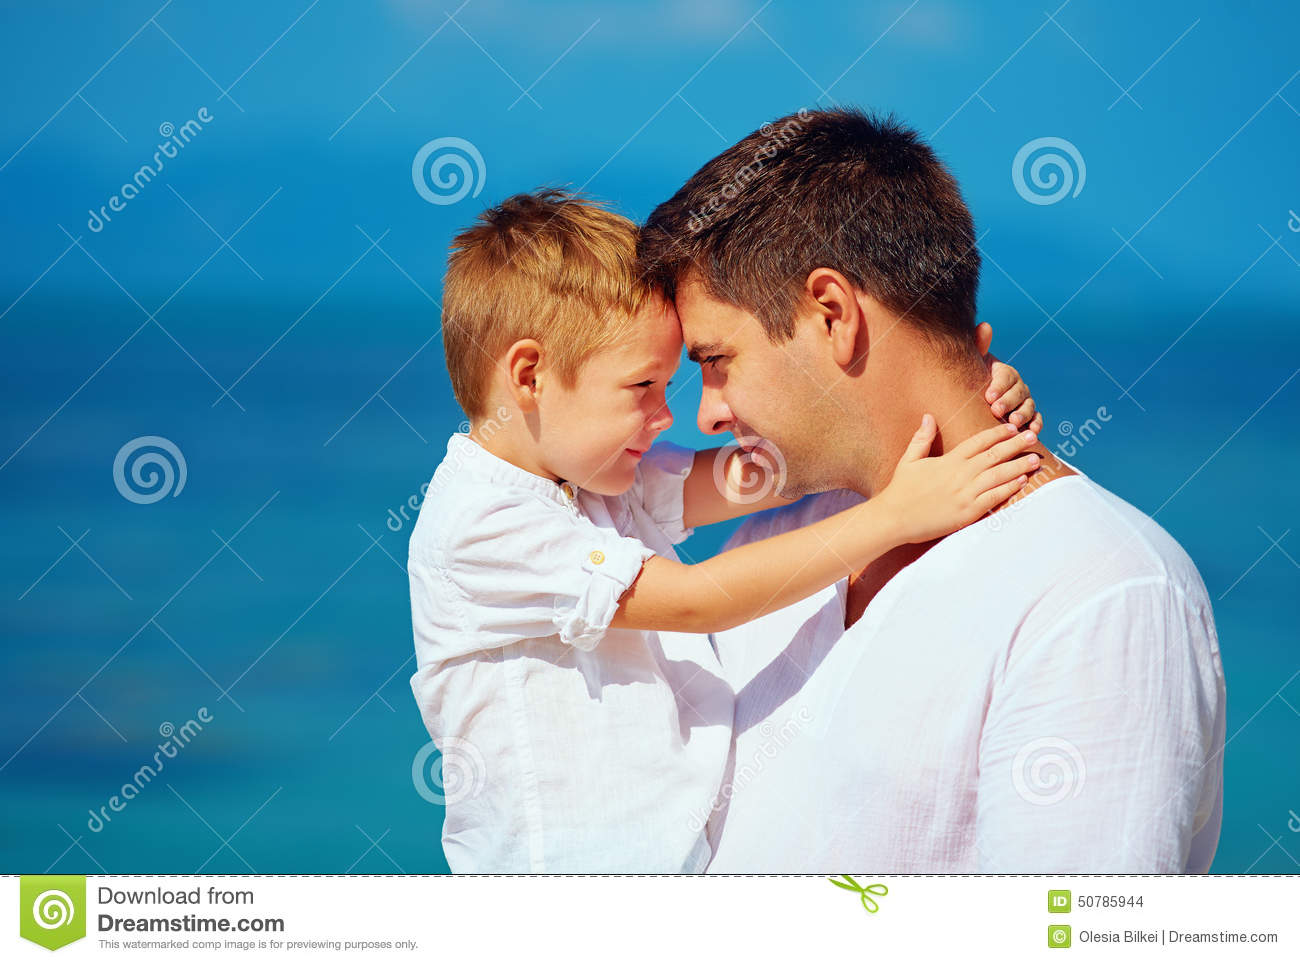 Cute Father And Son Embracing Family Relationship Stock